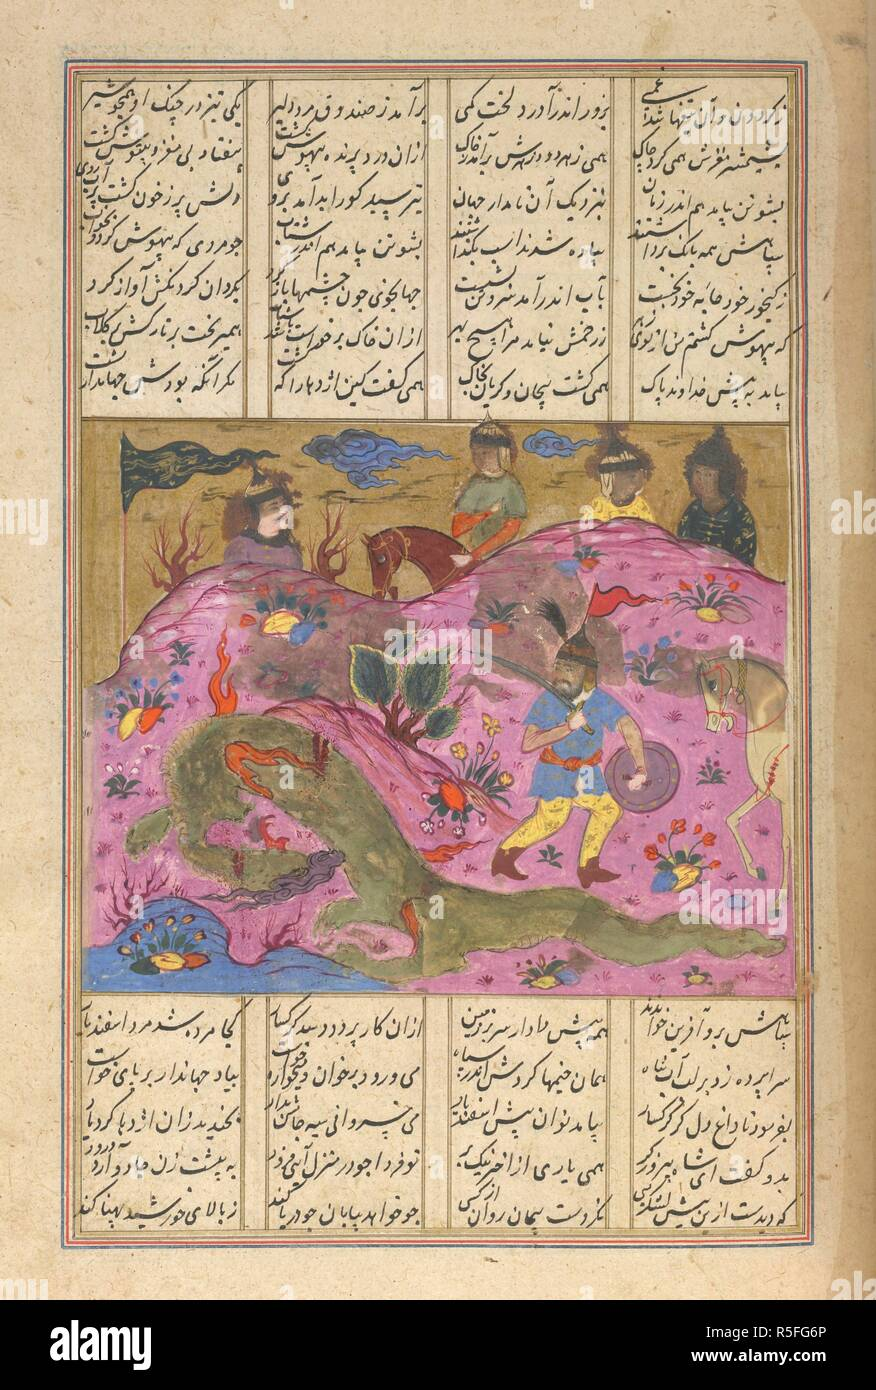 Isfandiyar and the dragon. Shahnama of Firdawsi, with 49 miniatures. Opaque w. 1590-1600. Isfandiyar and the dragon. Discoloured and damaged. The green paint of the dragon has rotted the page: the silver paint has run and blackened badly. 11.5 by 14.5 cm.  Image taken from Shahnama of Firdawsi, with 49 miniatures. Opaque watercolour. Safavid/Isfahan style.  Originally published/produced in 1590-1600. . Source: I.O. ISLAMIC 3254, f.295. Language: Persian. Stock Photo